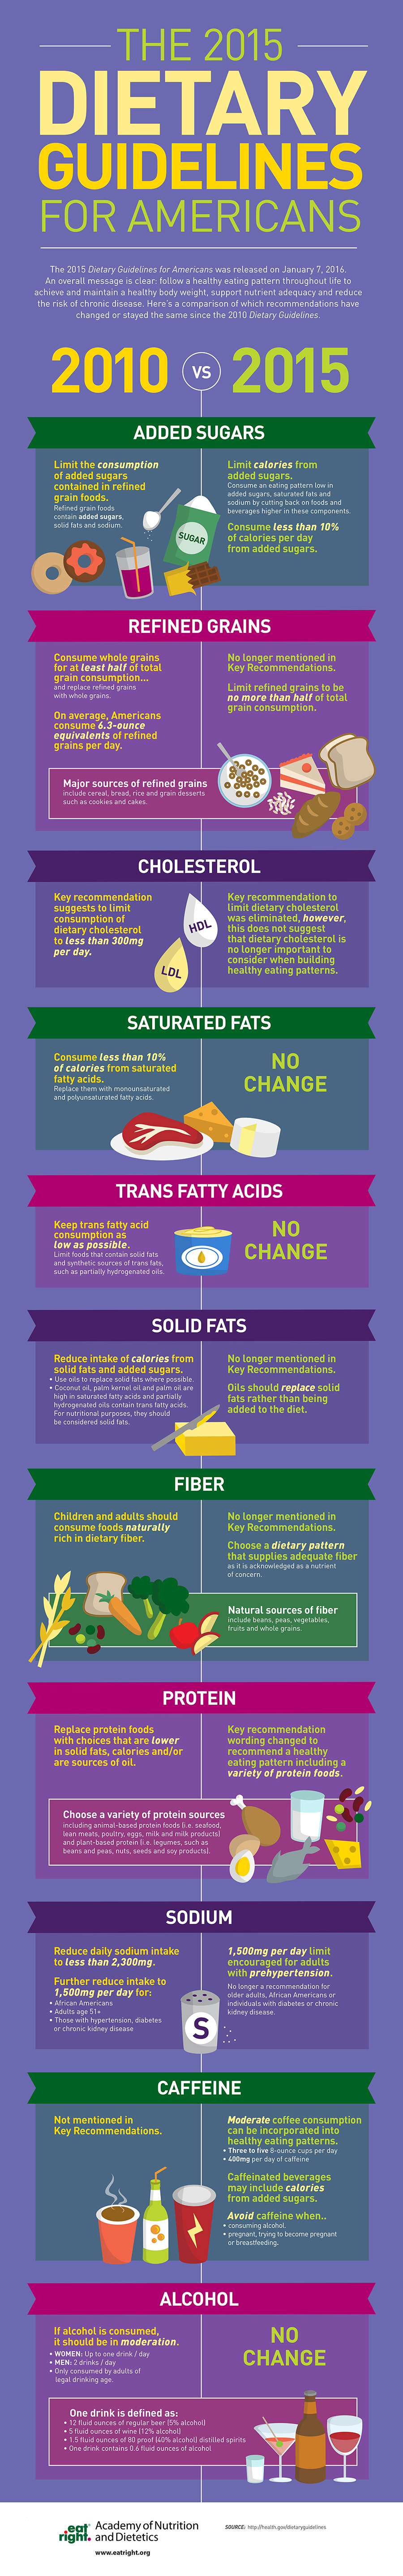 2015 Dietary Guidelines for Americans Infographic